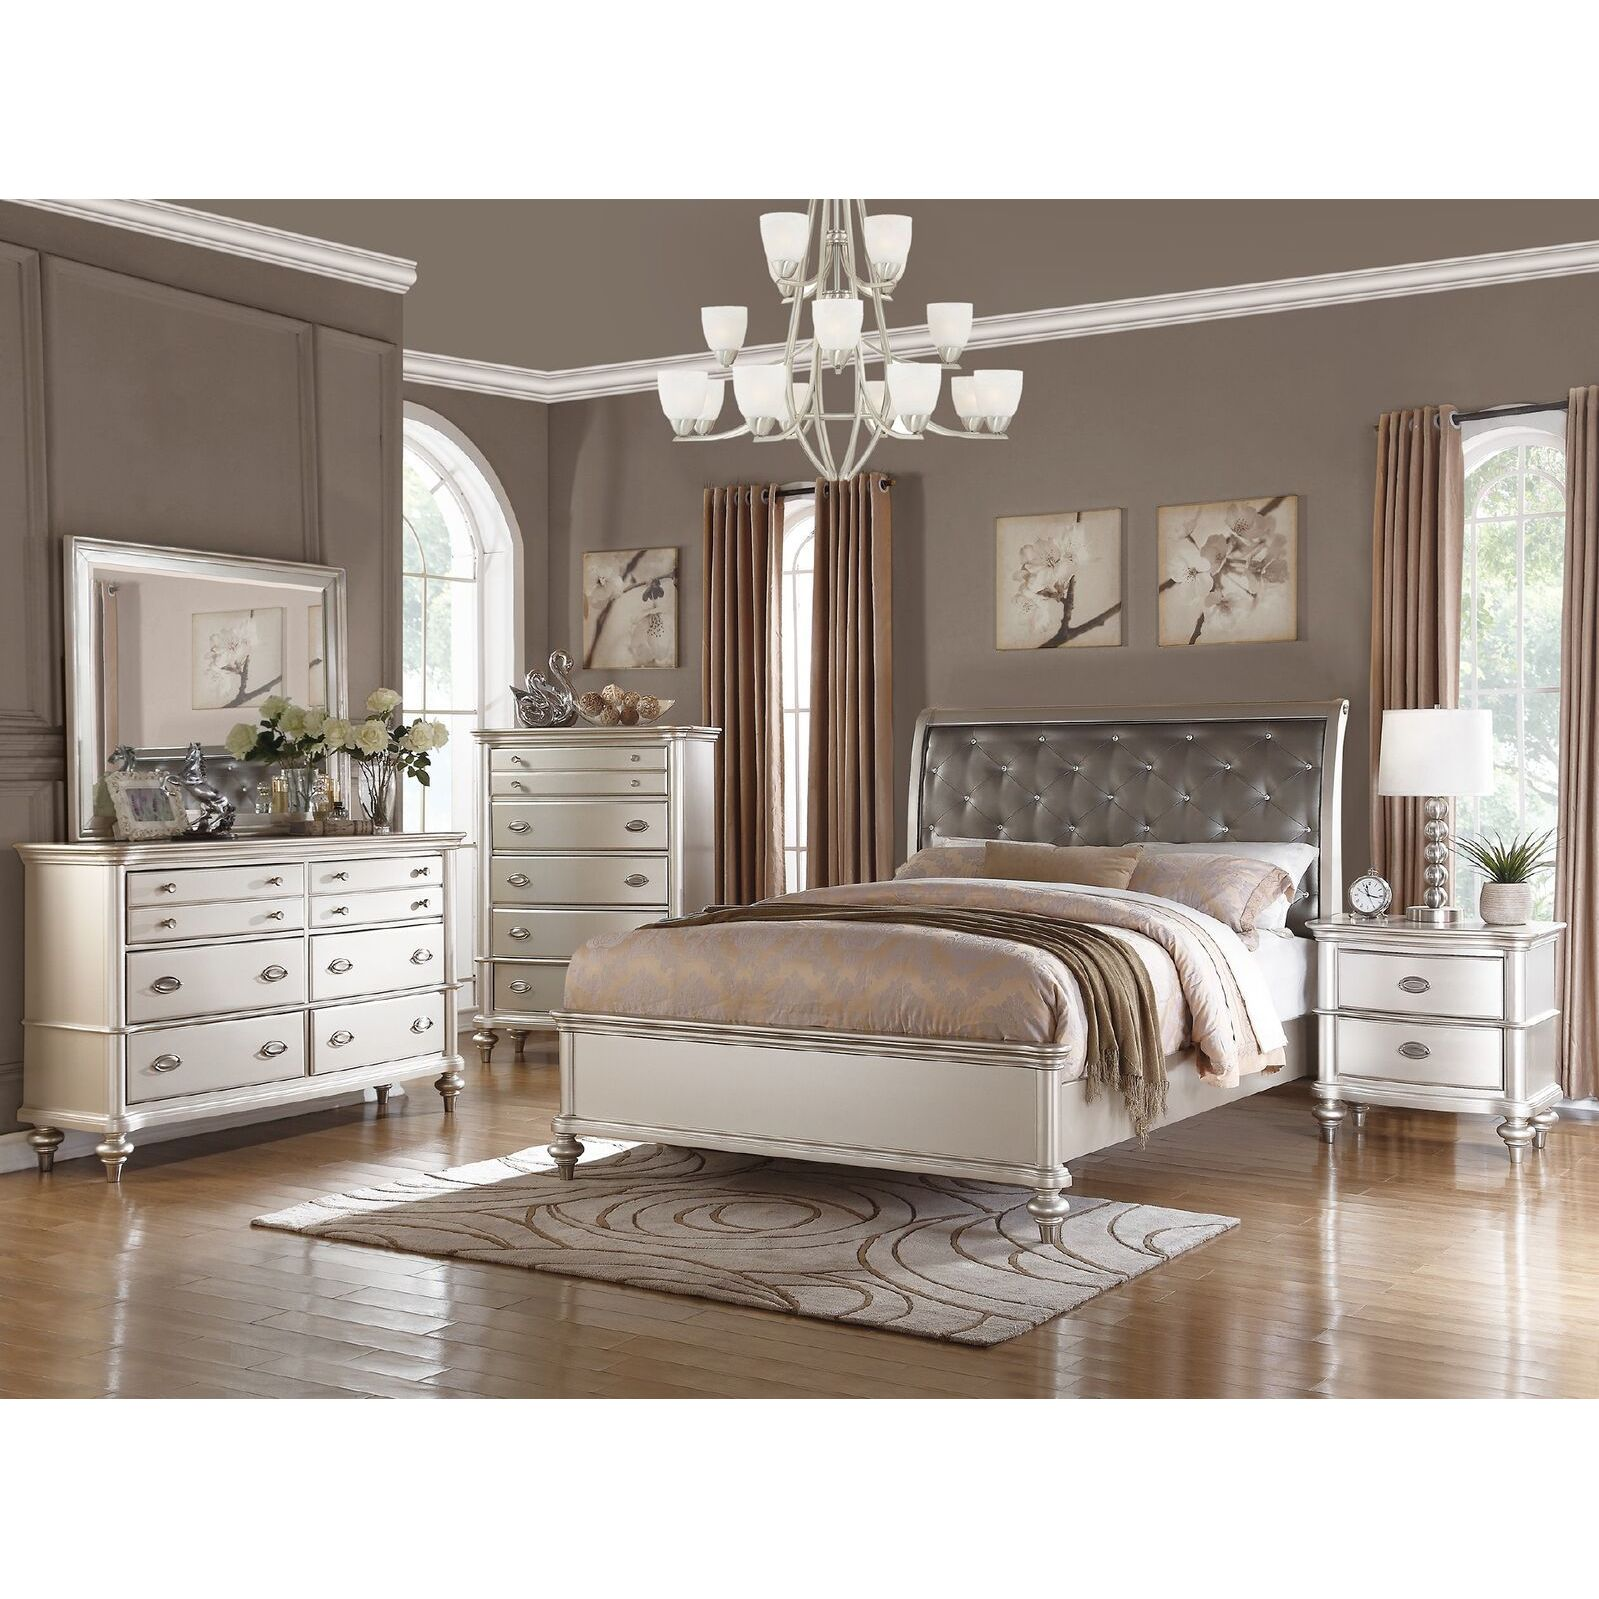 overstock bedroom examplary unique home decor of sets interior wall